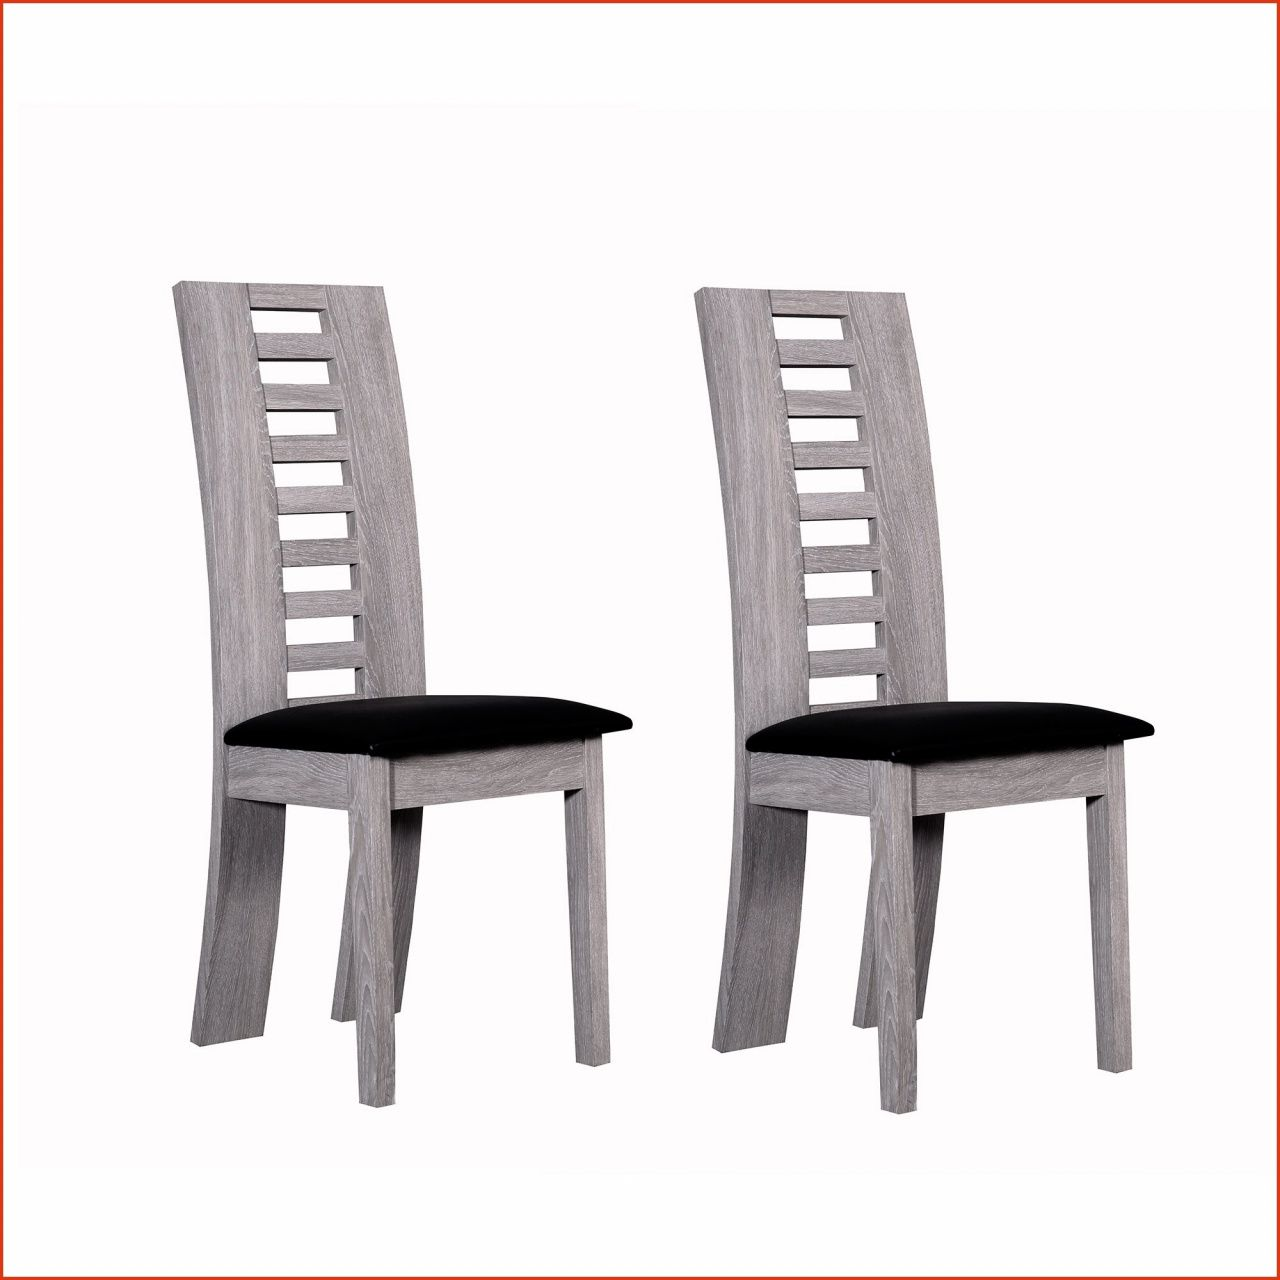 77 chaises salle a manger but chaise